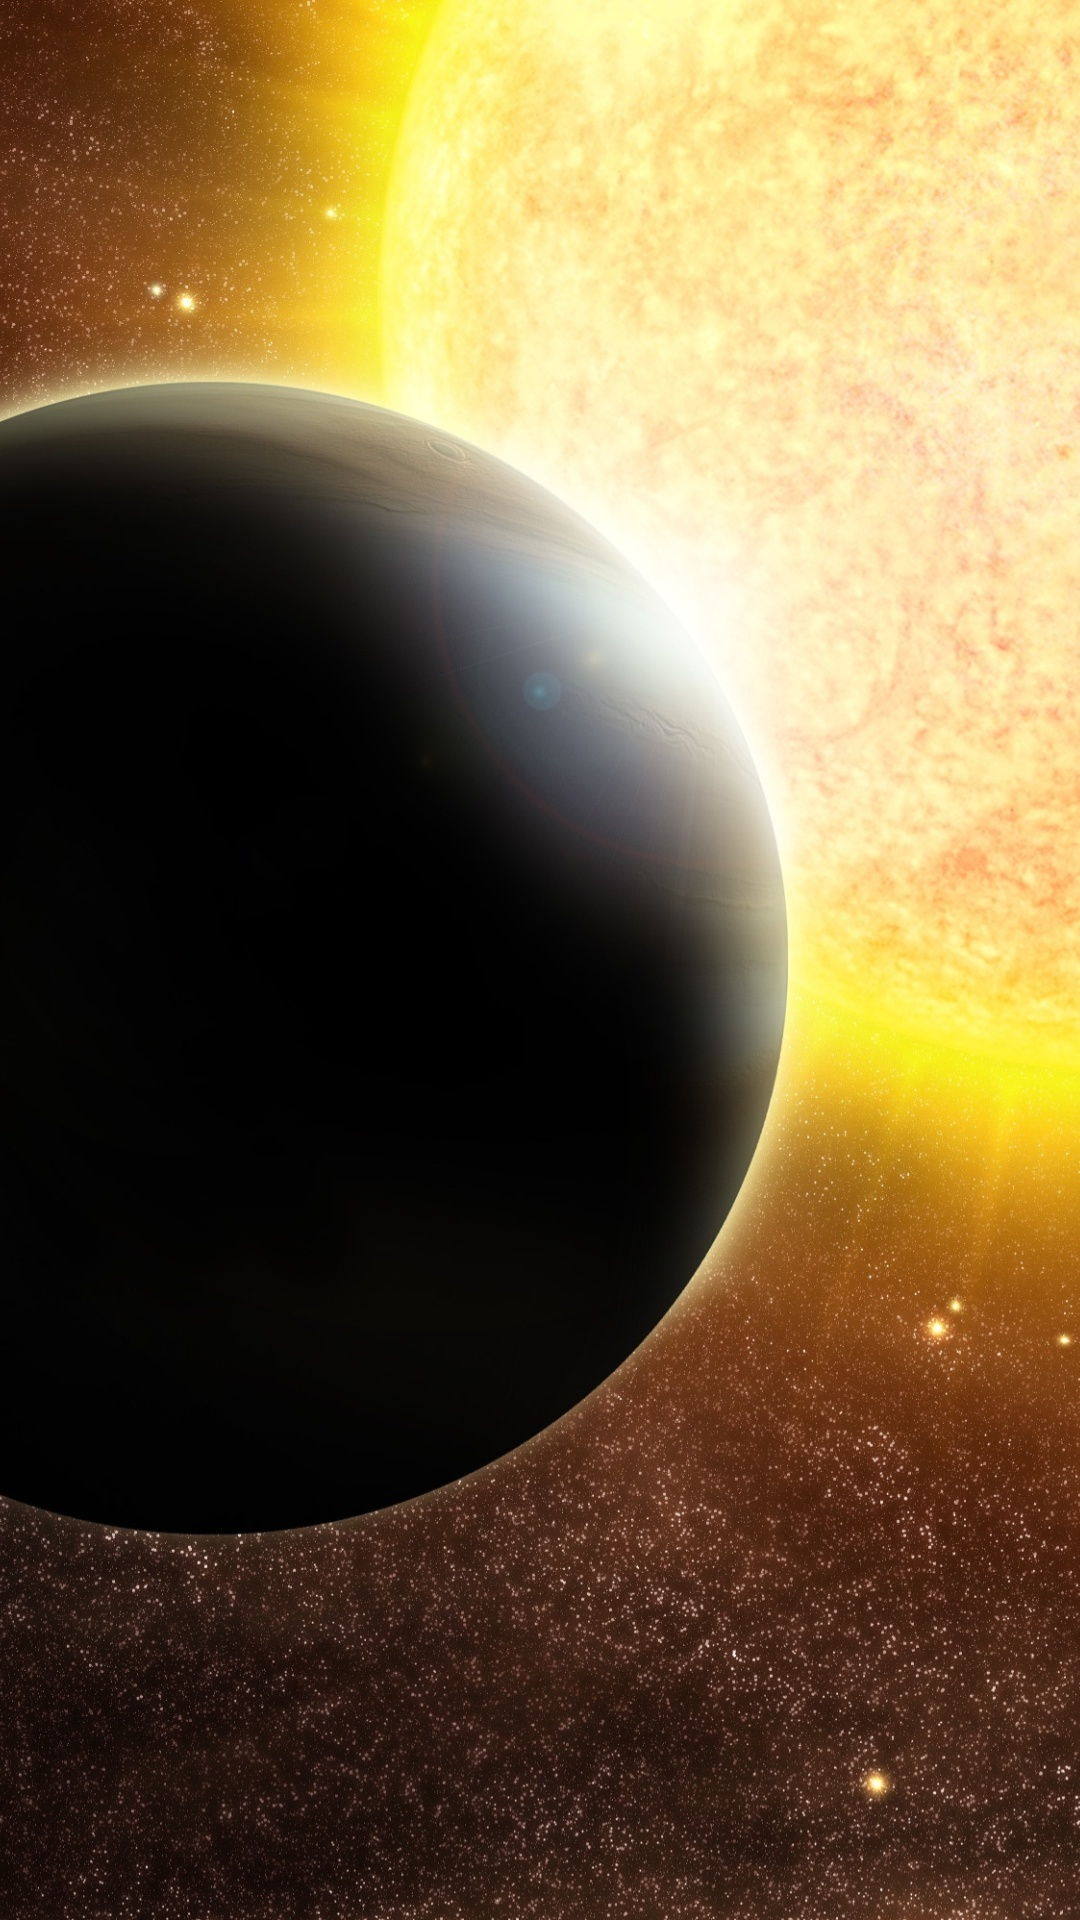 extrasolar planets wallpaper - photo #6